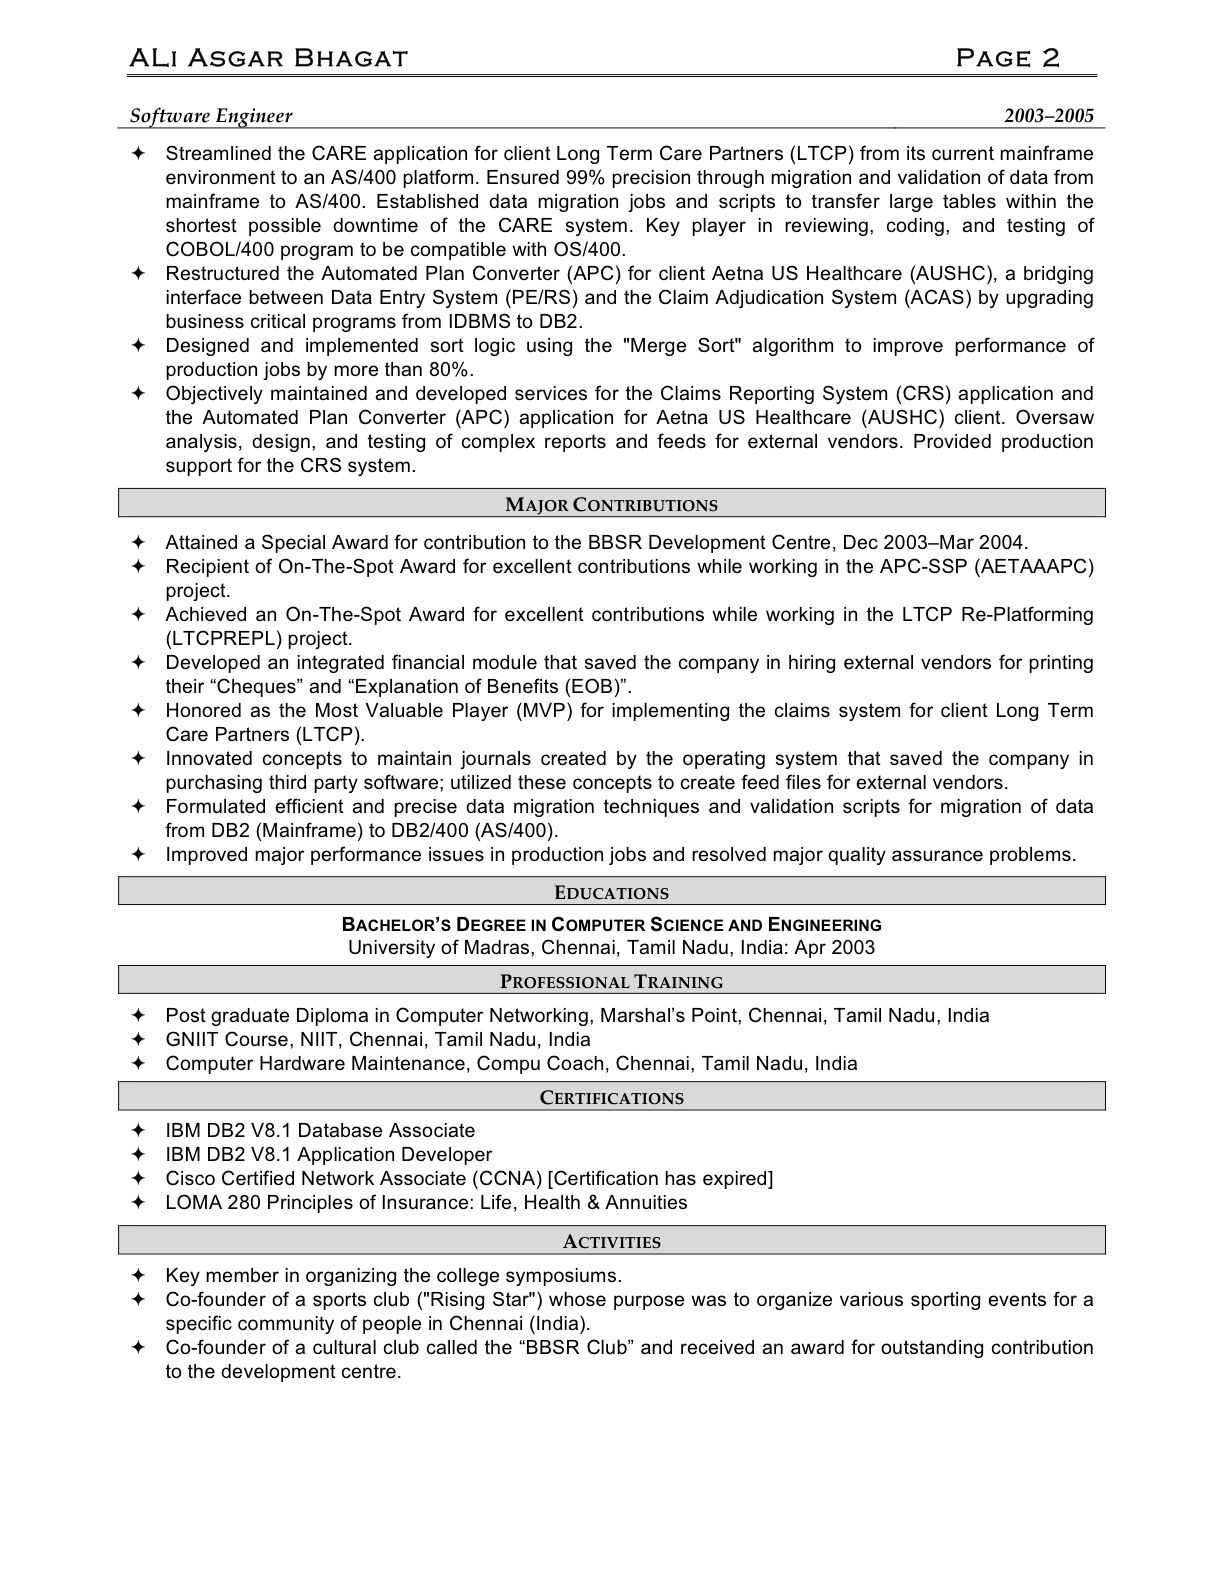 Information Technology Resume 3 Business Plan Outline Creative